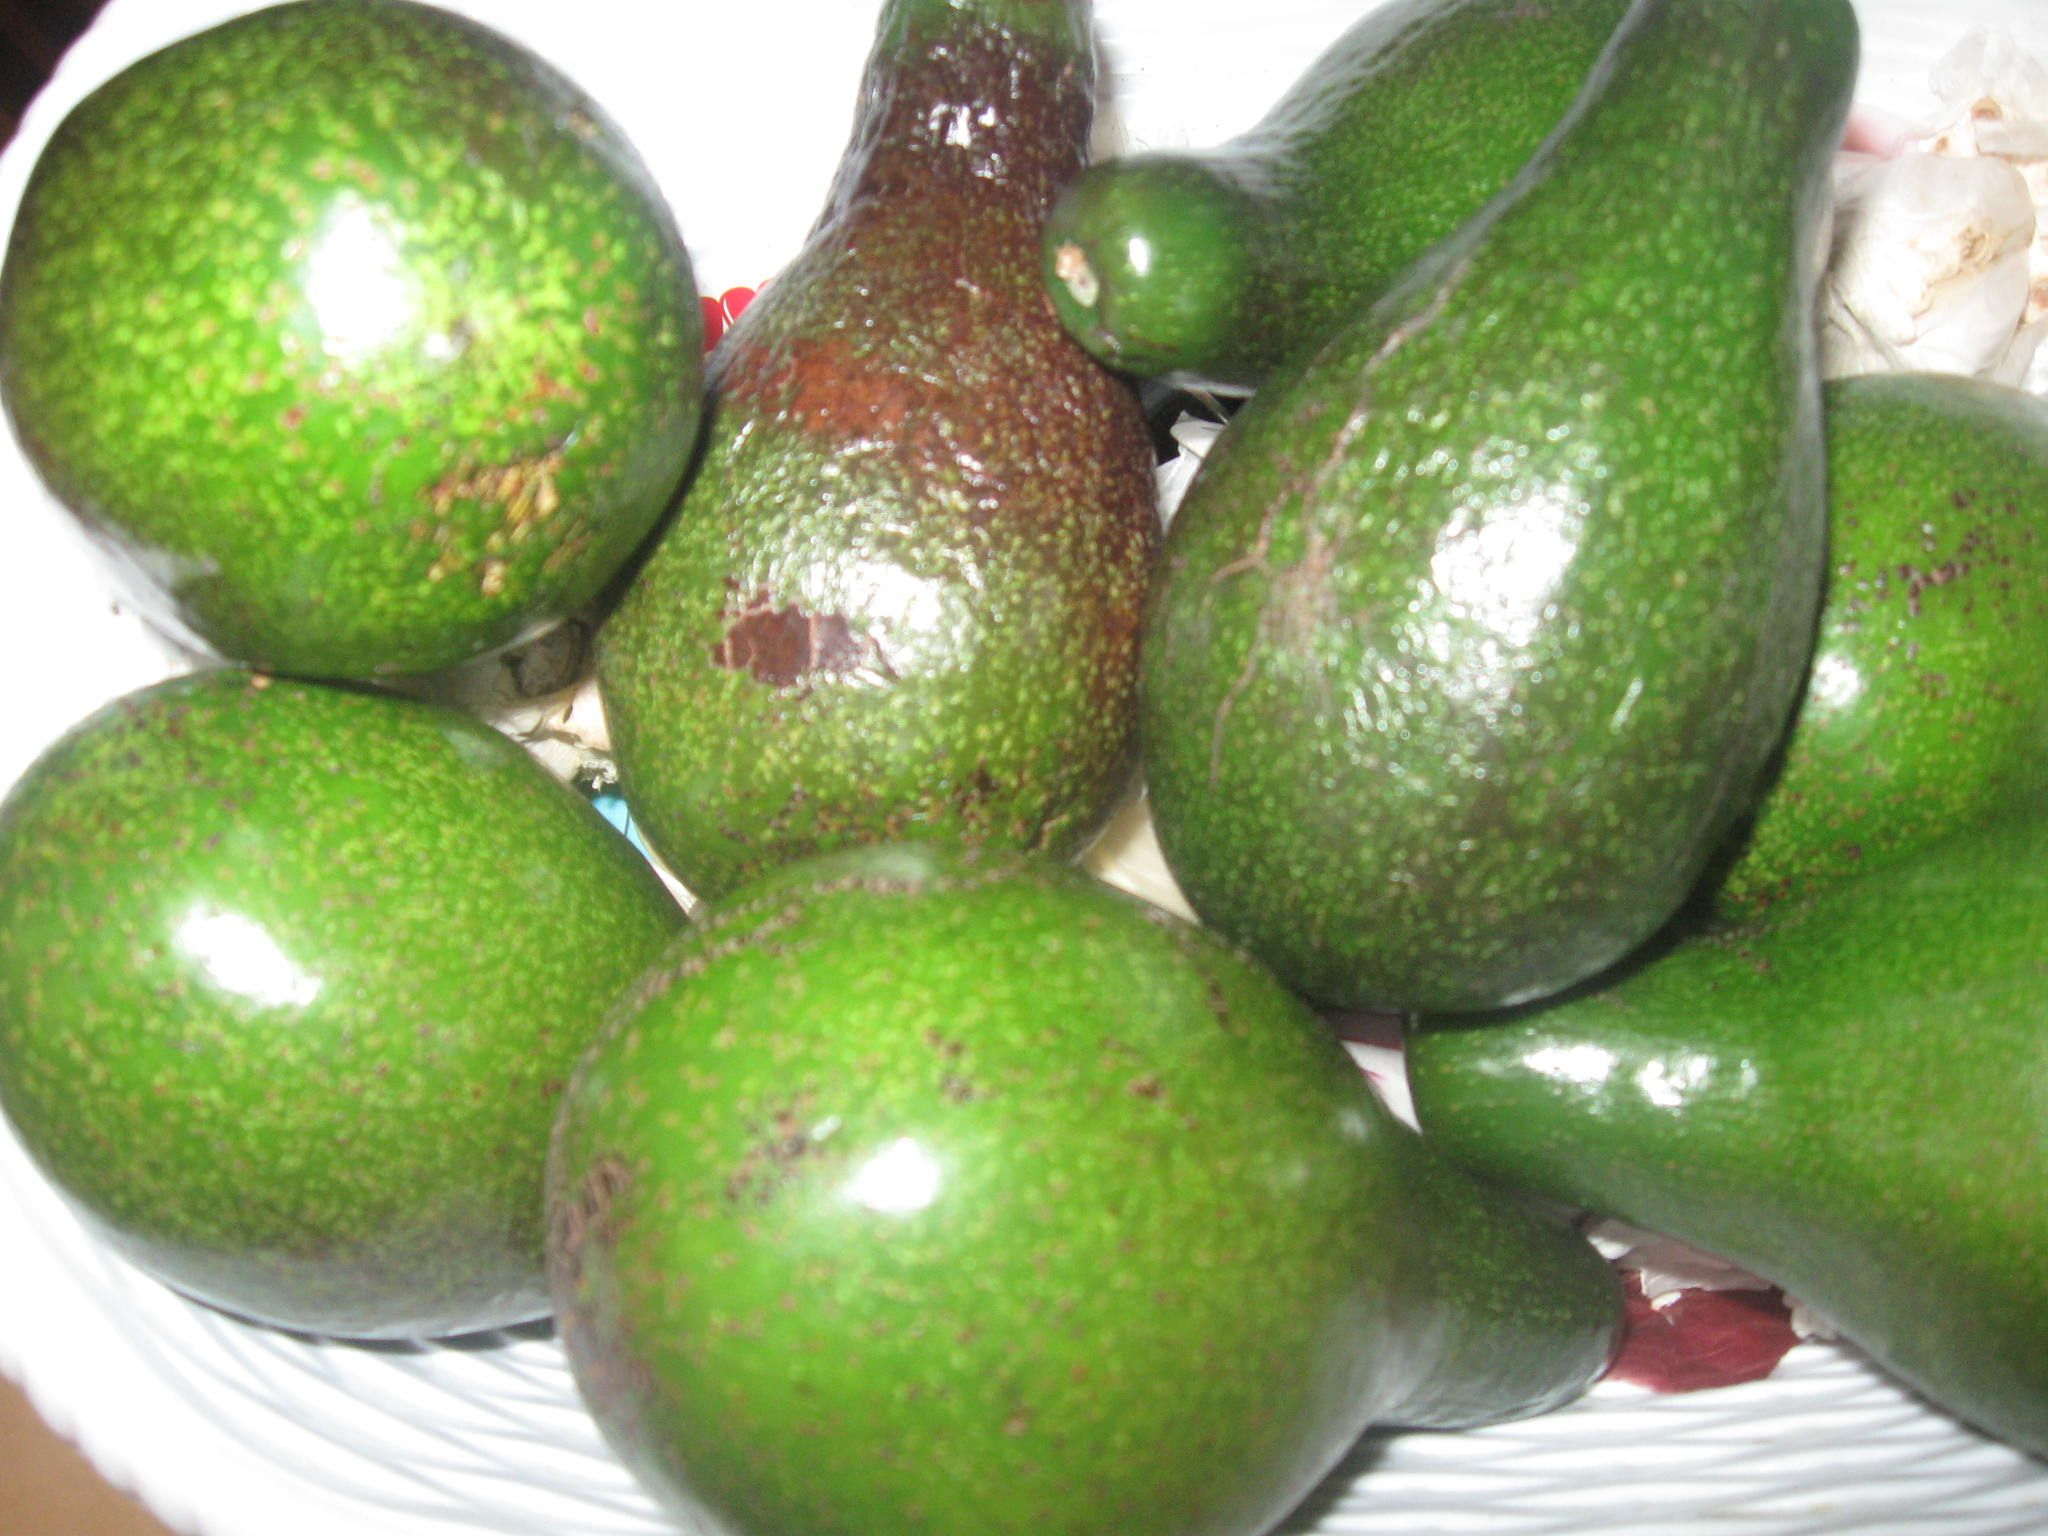 The Avocado Pear or Alligator Pear in Jamaica...The above